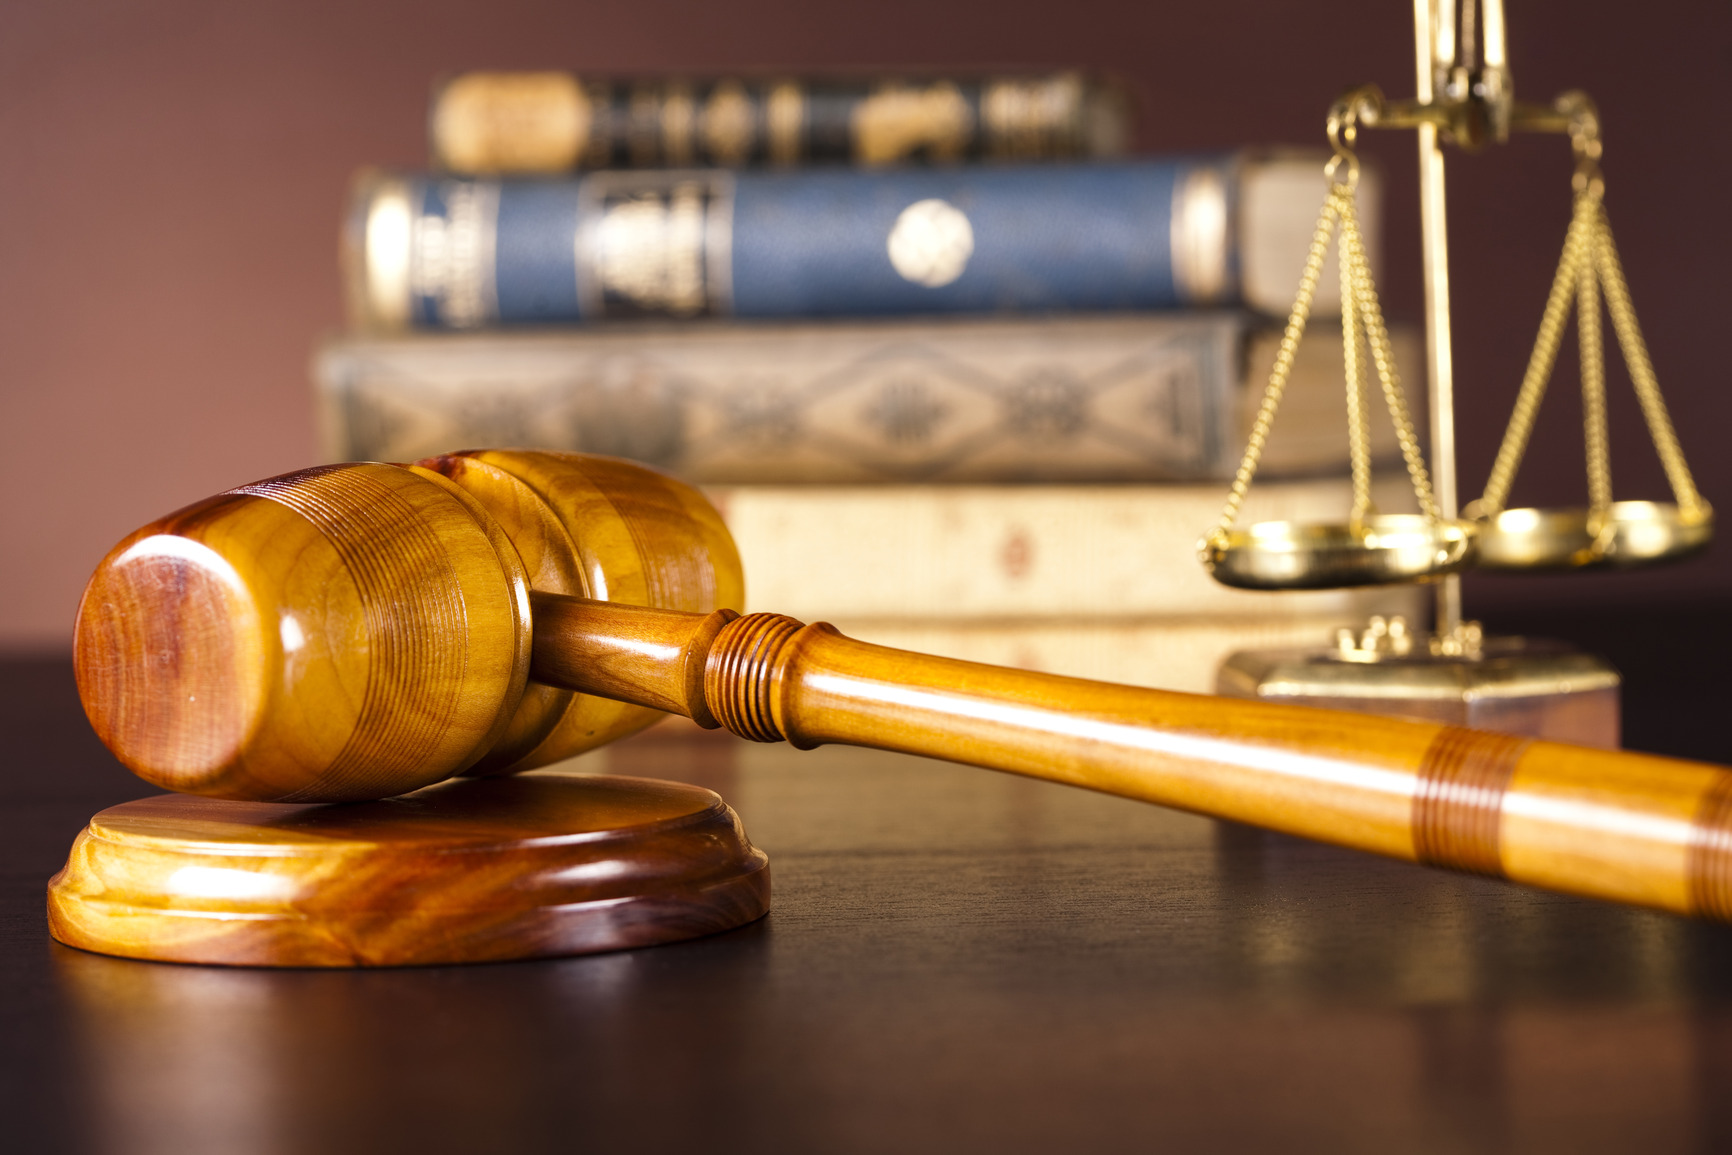 Could parties submit a petition to the court while they have already agreed upon an arbitration agreement?